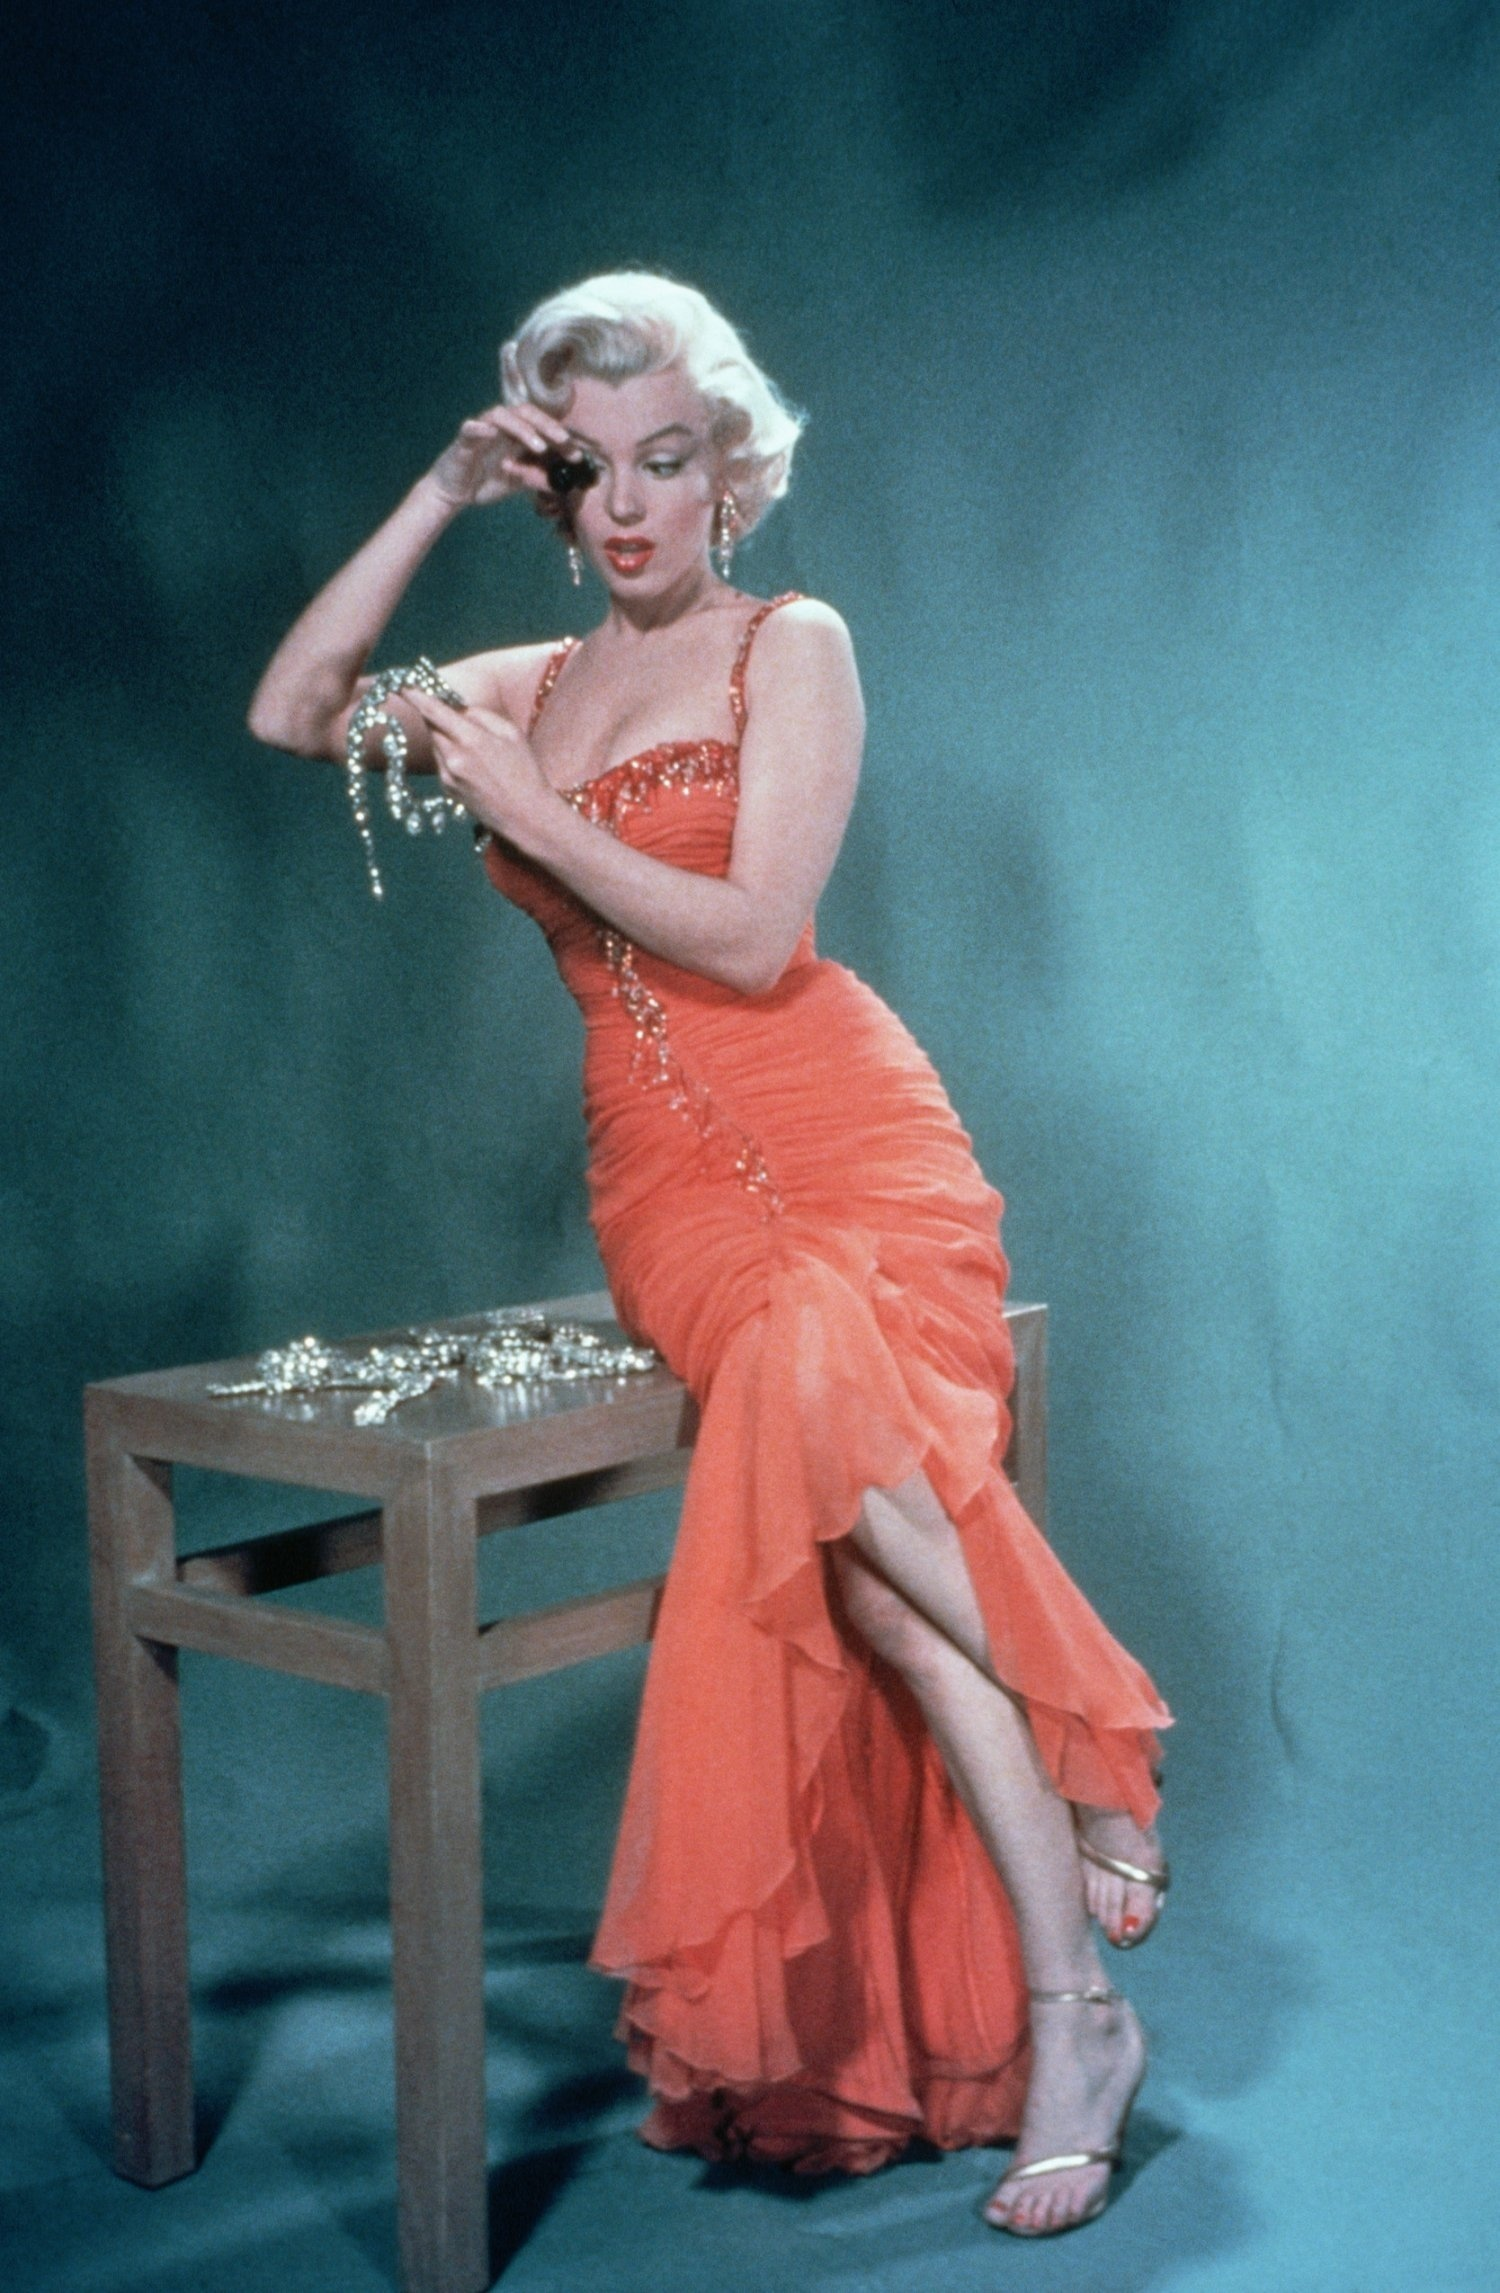 This Marilyn Monroe dress is worth more than gold